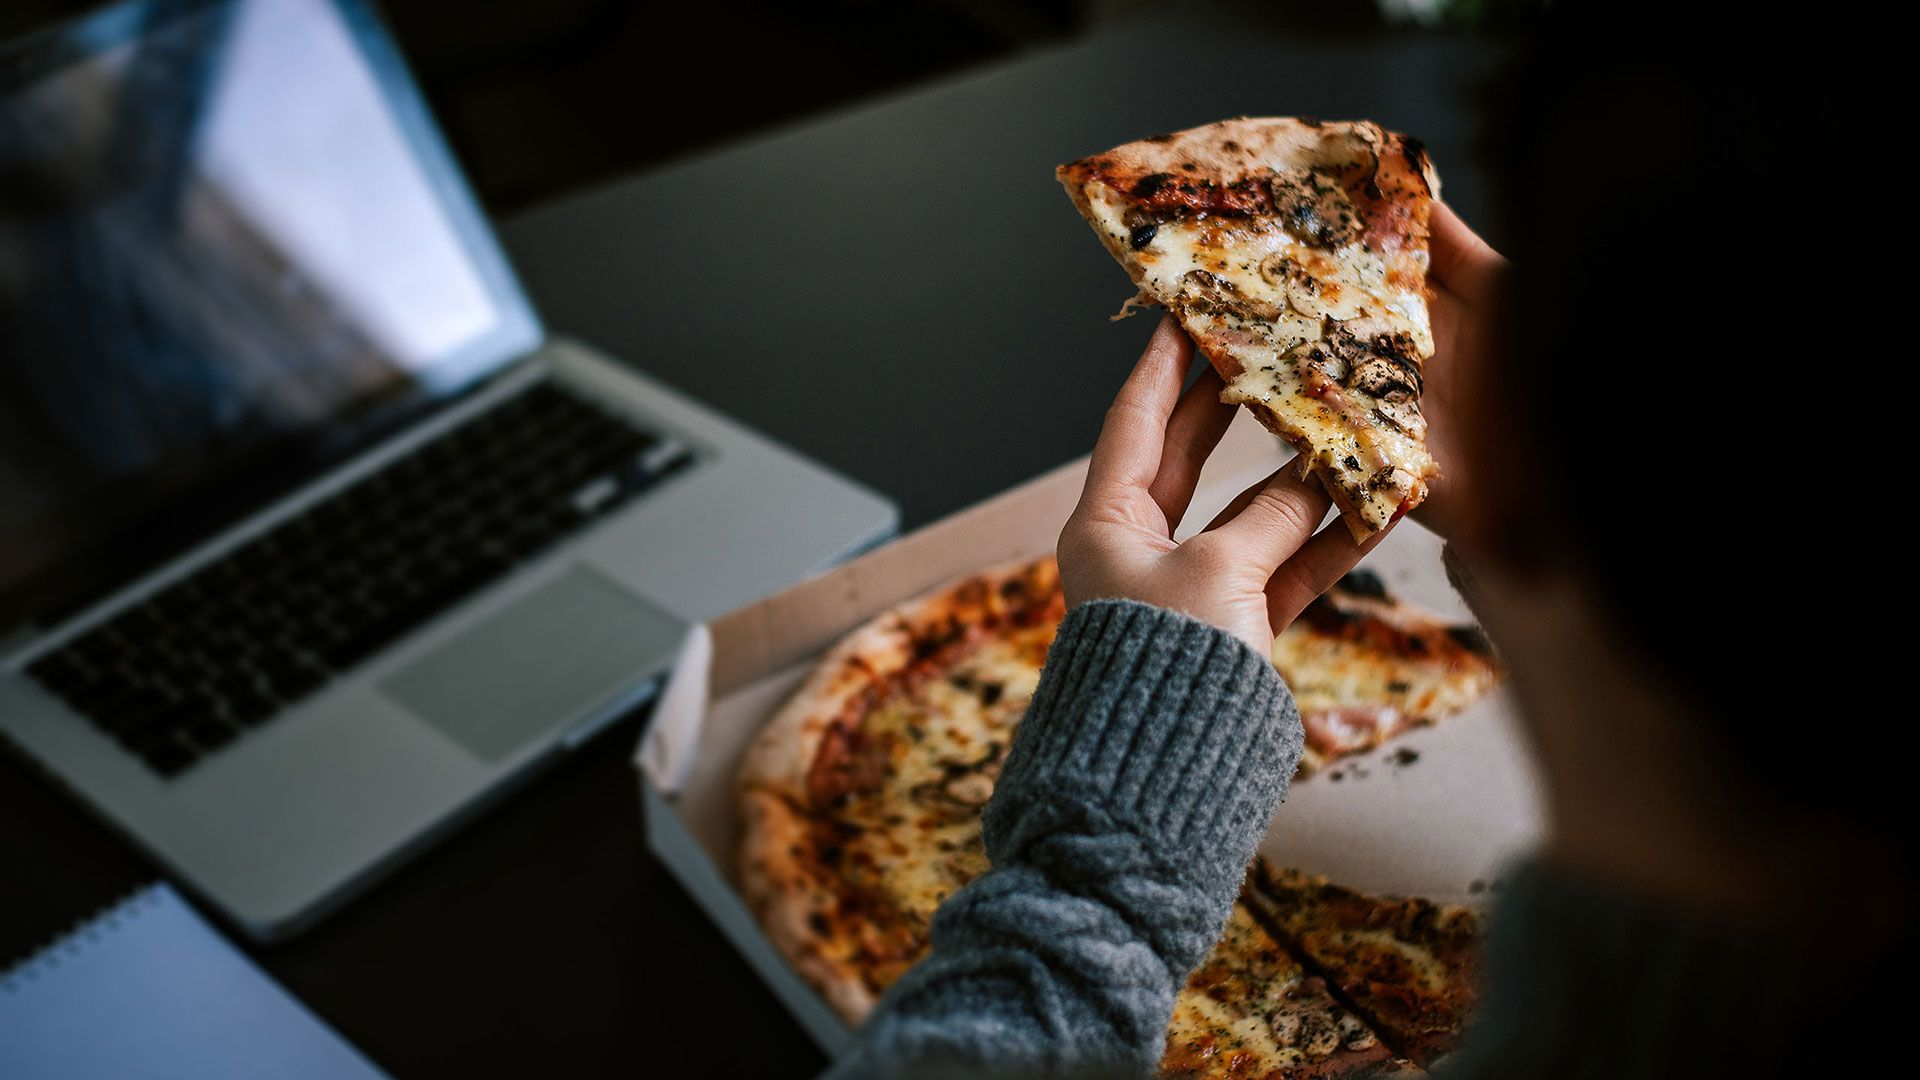 6 Ways to Curb Your Late-Night Cravings